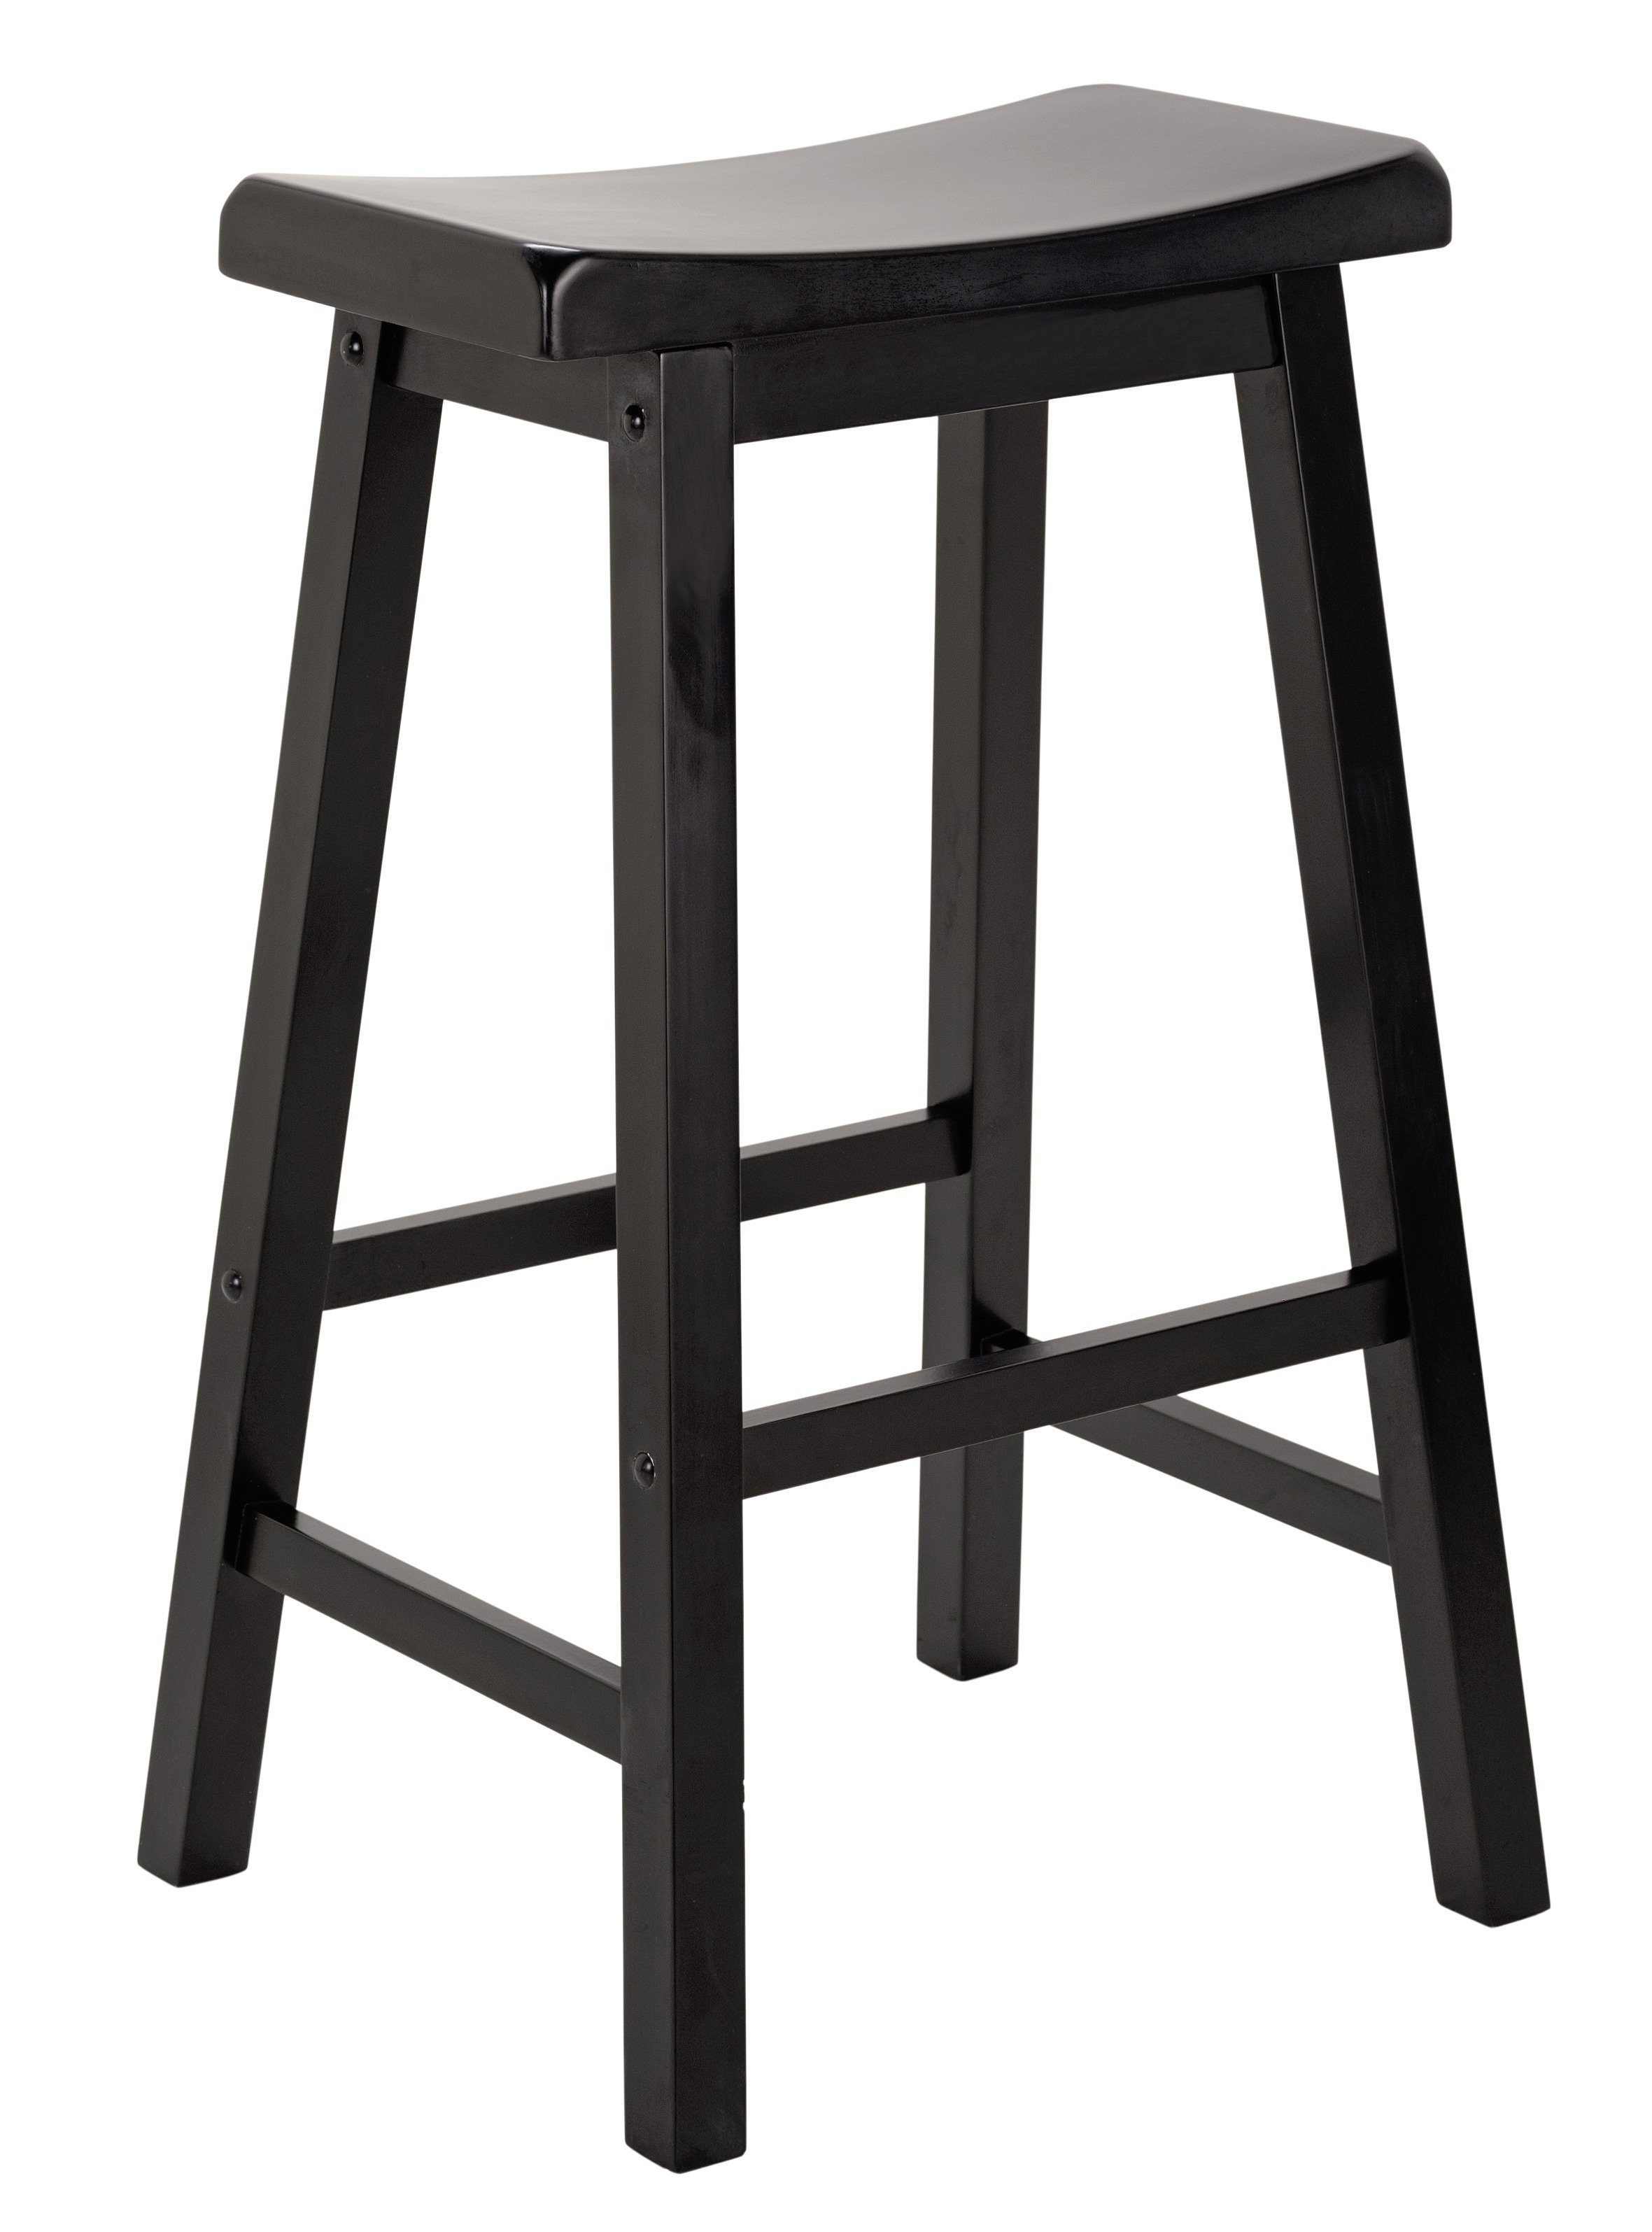 beach chairs uk argos oversized swivel accent chair sale on hygena solid wood saddle bar stool black